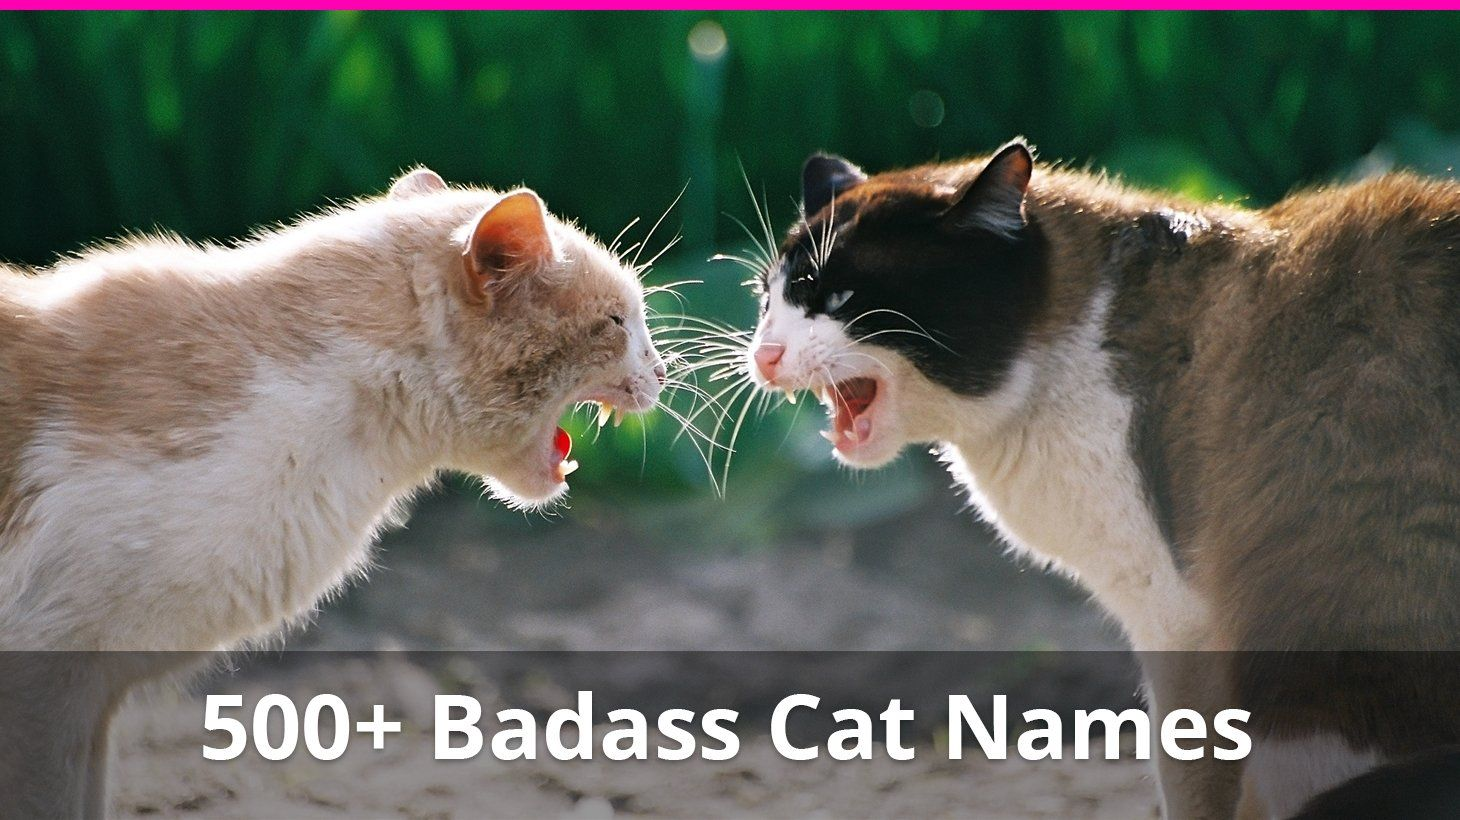 Best 500+ Badass and Tough Cat Names For Male And Female